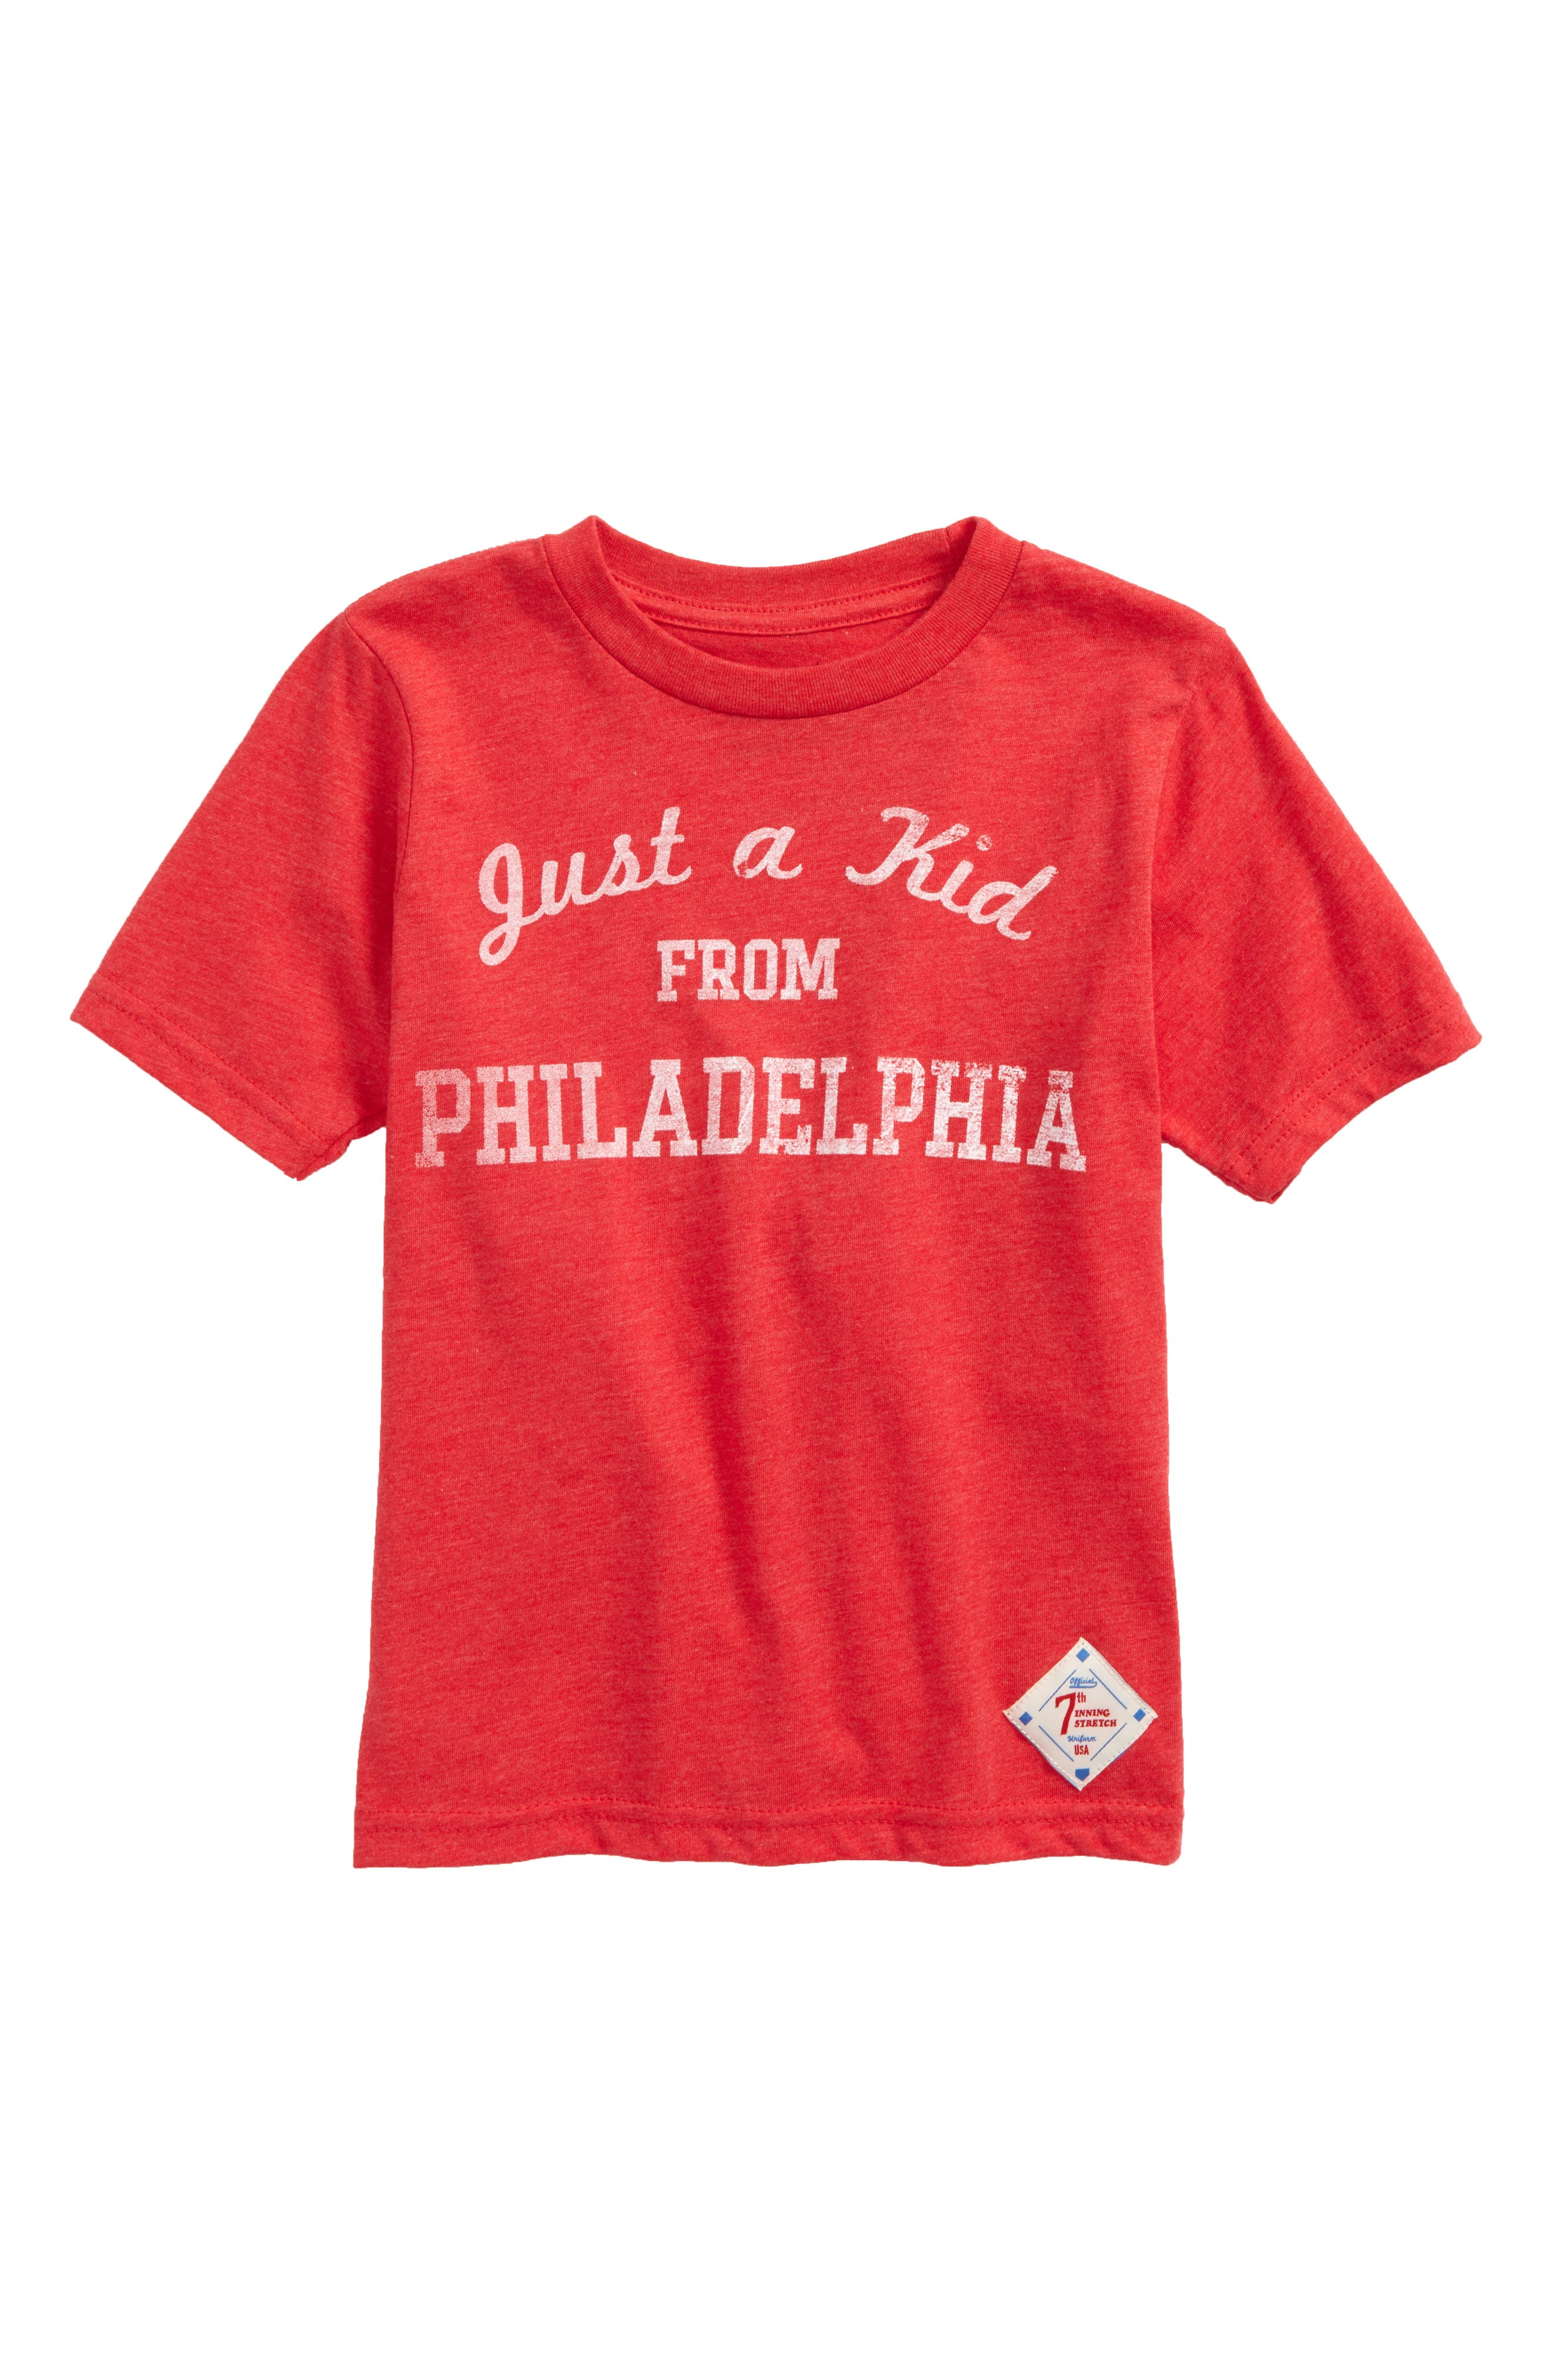 Just a Kid from Philadelphia Graphic T-Shirt,                             Main thumbnail 1, color,                             600